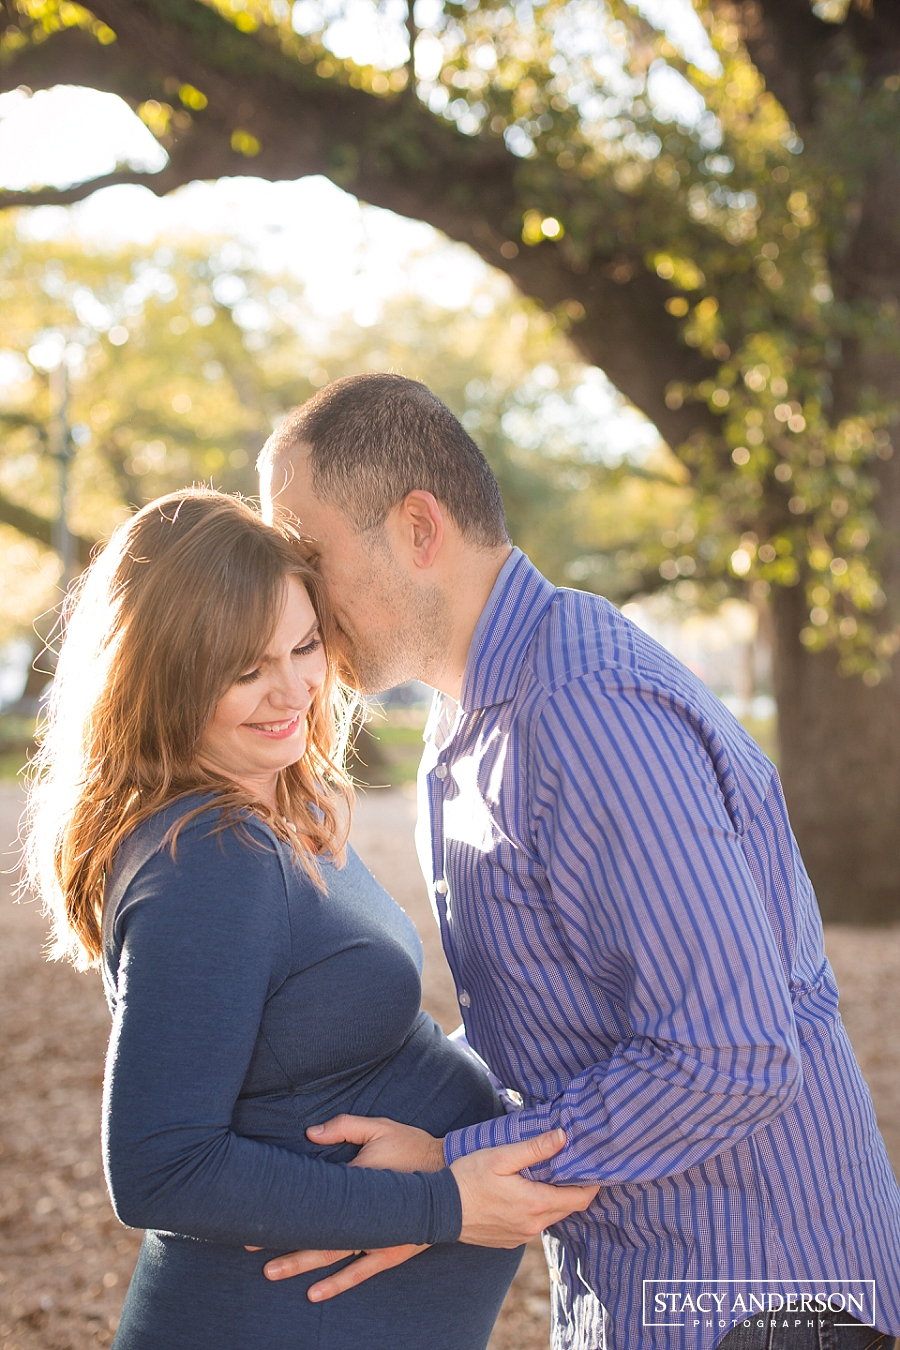 Stacy Anderson Photography Houston Maternity Photographer_1184